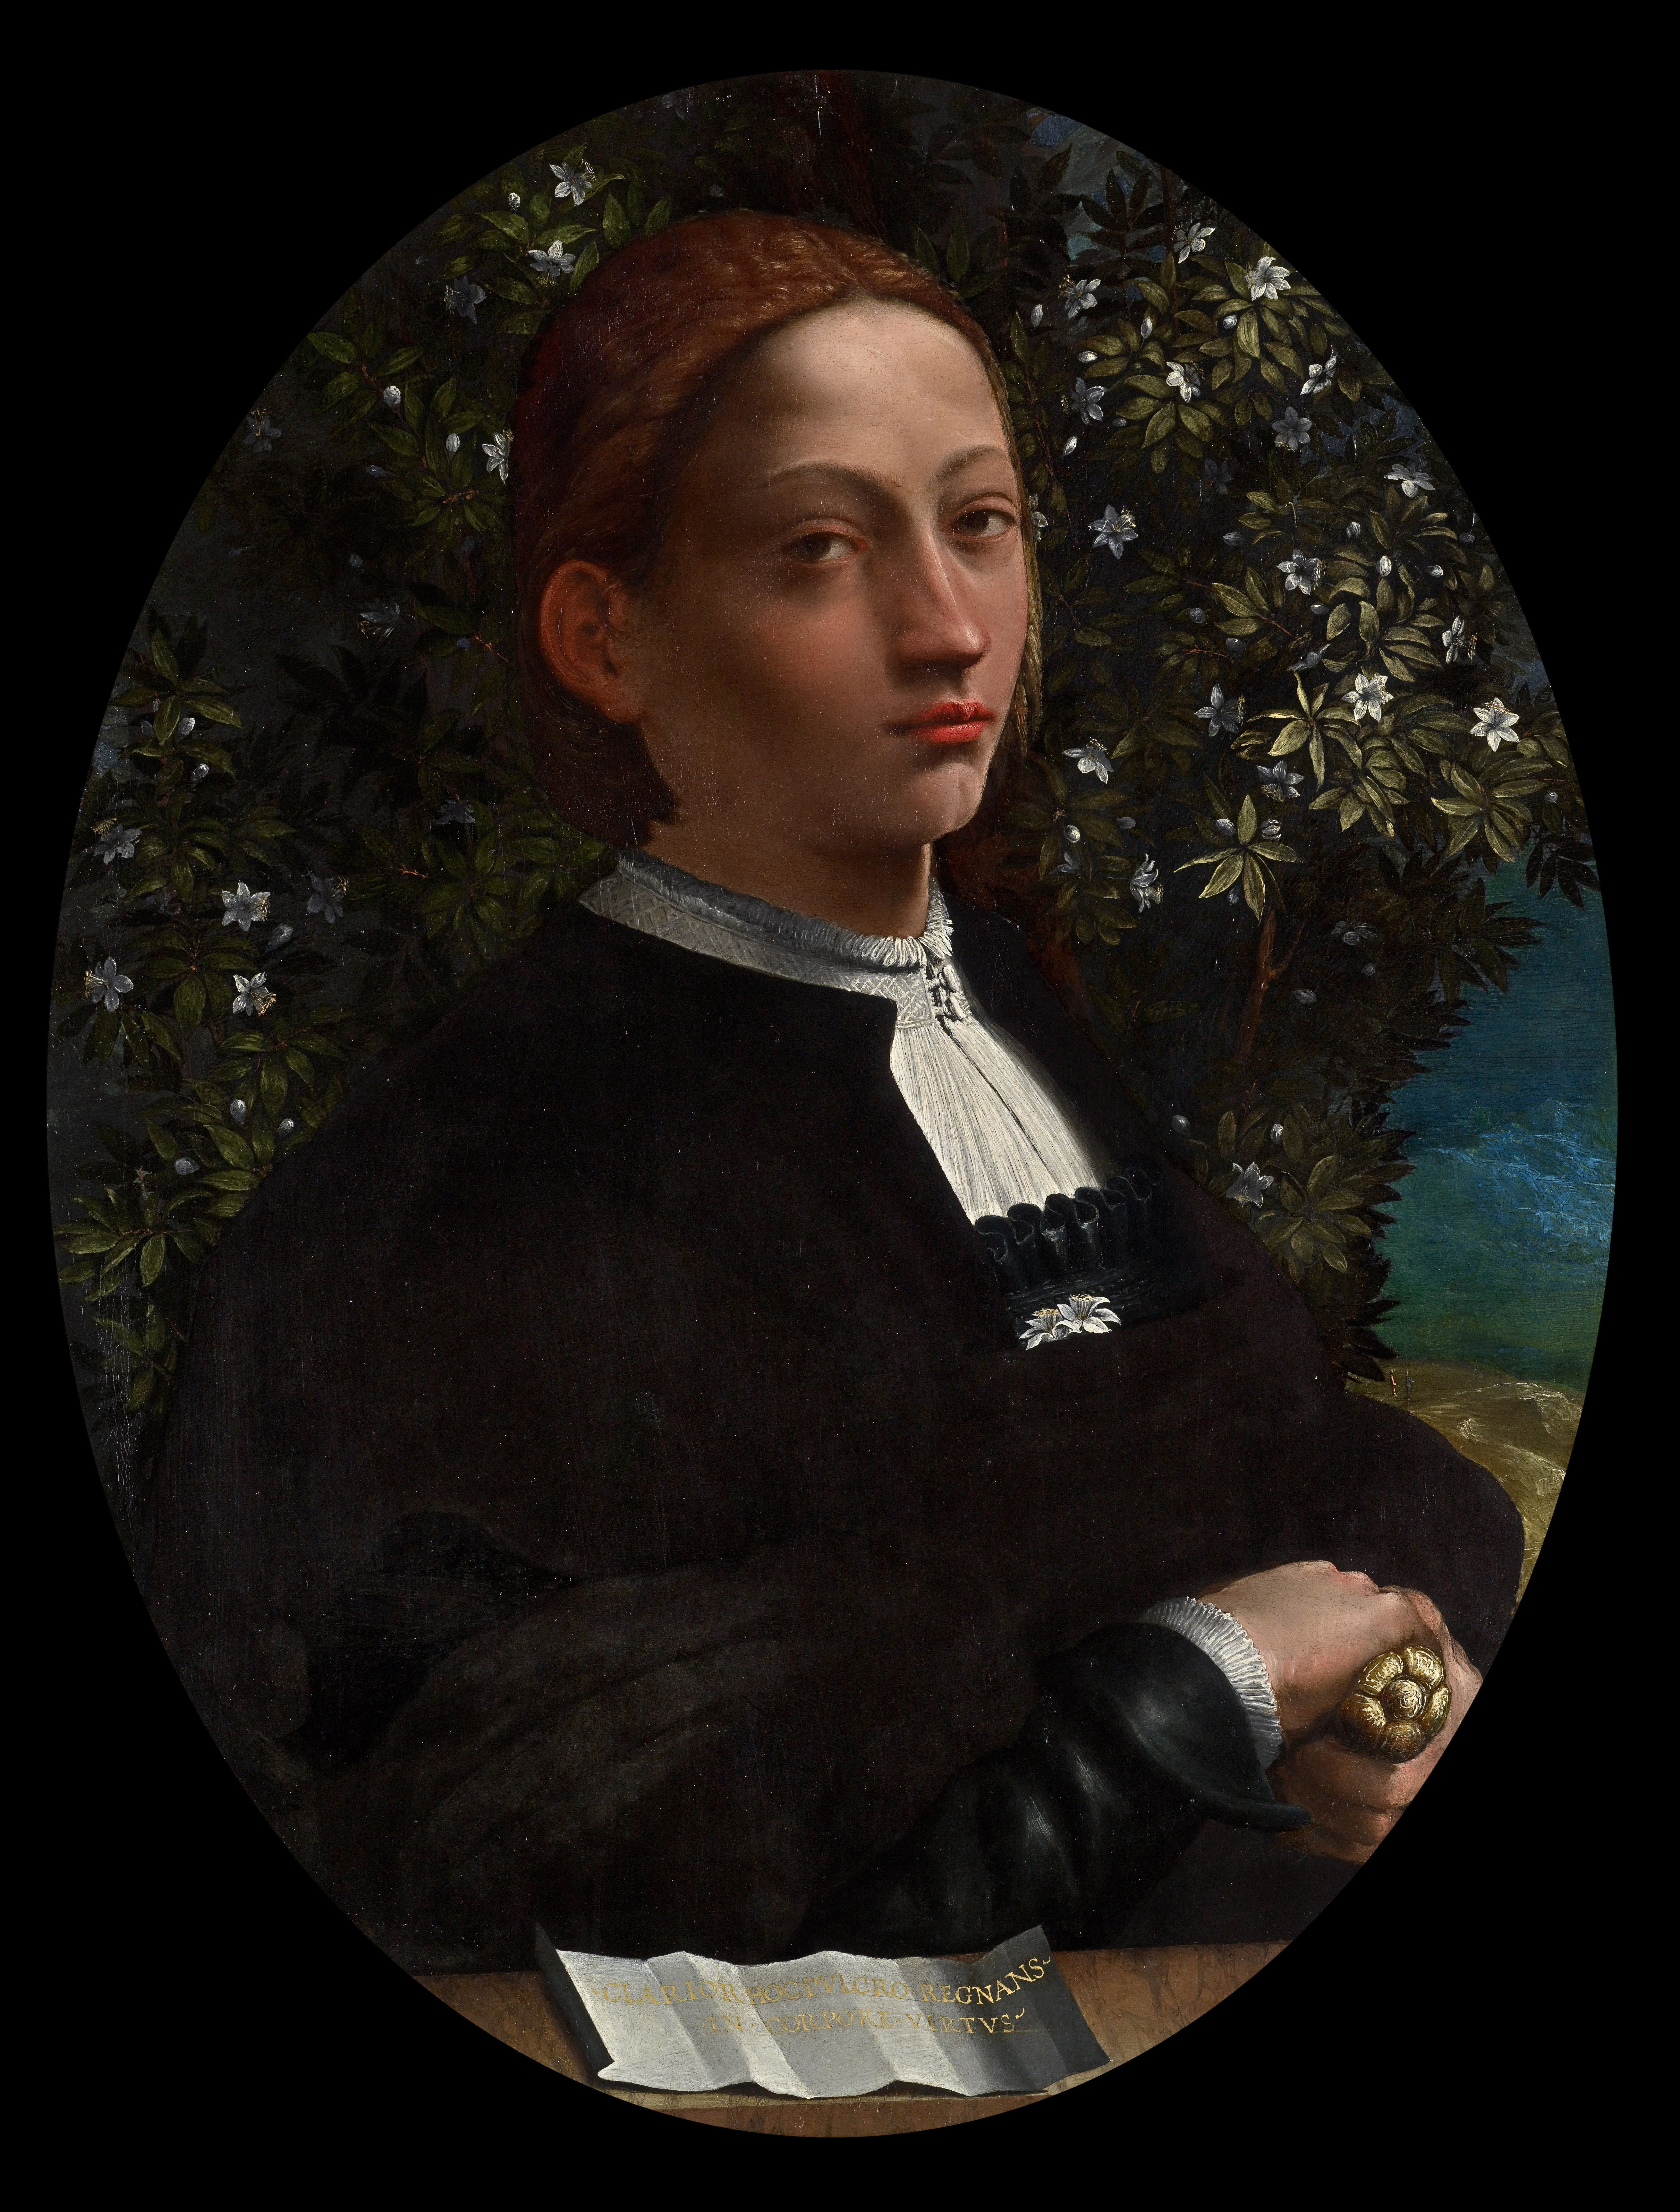 """The only confirmed Lucrezia portrait painted from life (attributed to [[Dosso Dossi]], c. 1519, [[National Gallery of Victoria]]<ref>[https://www.ngv.vic.gov.au/media_release/ngv-solves-mystery-of-renaissance-portrait/ """"NGV Solves Mystery of Renaissance Portrait""""] (26 November 2008), NGV. Retrieved 4 June 2020.</ref>)"""